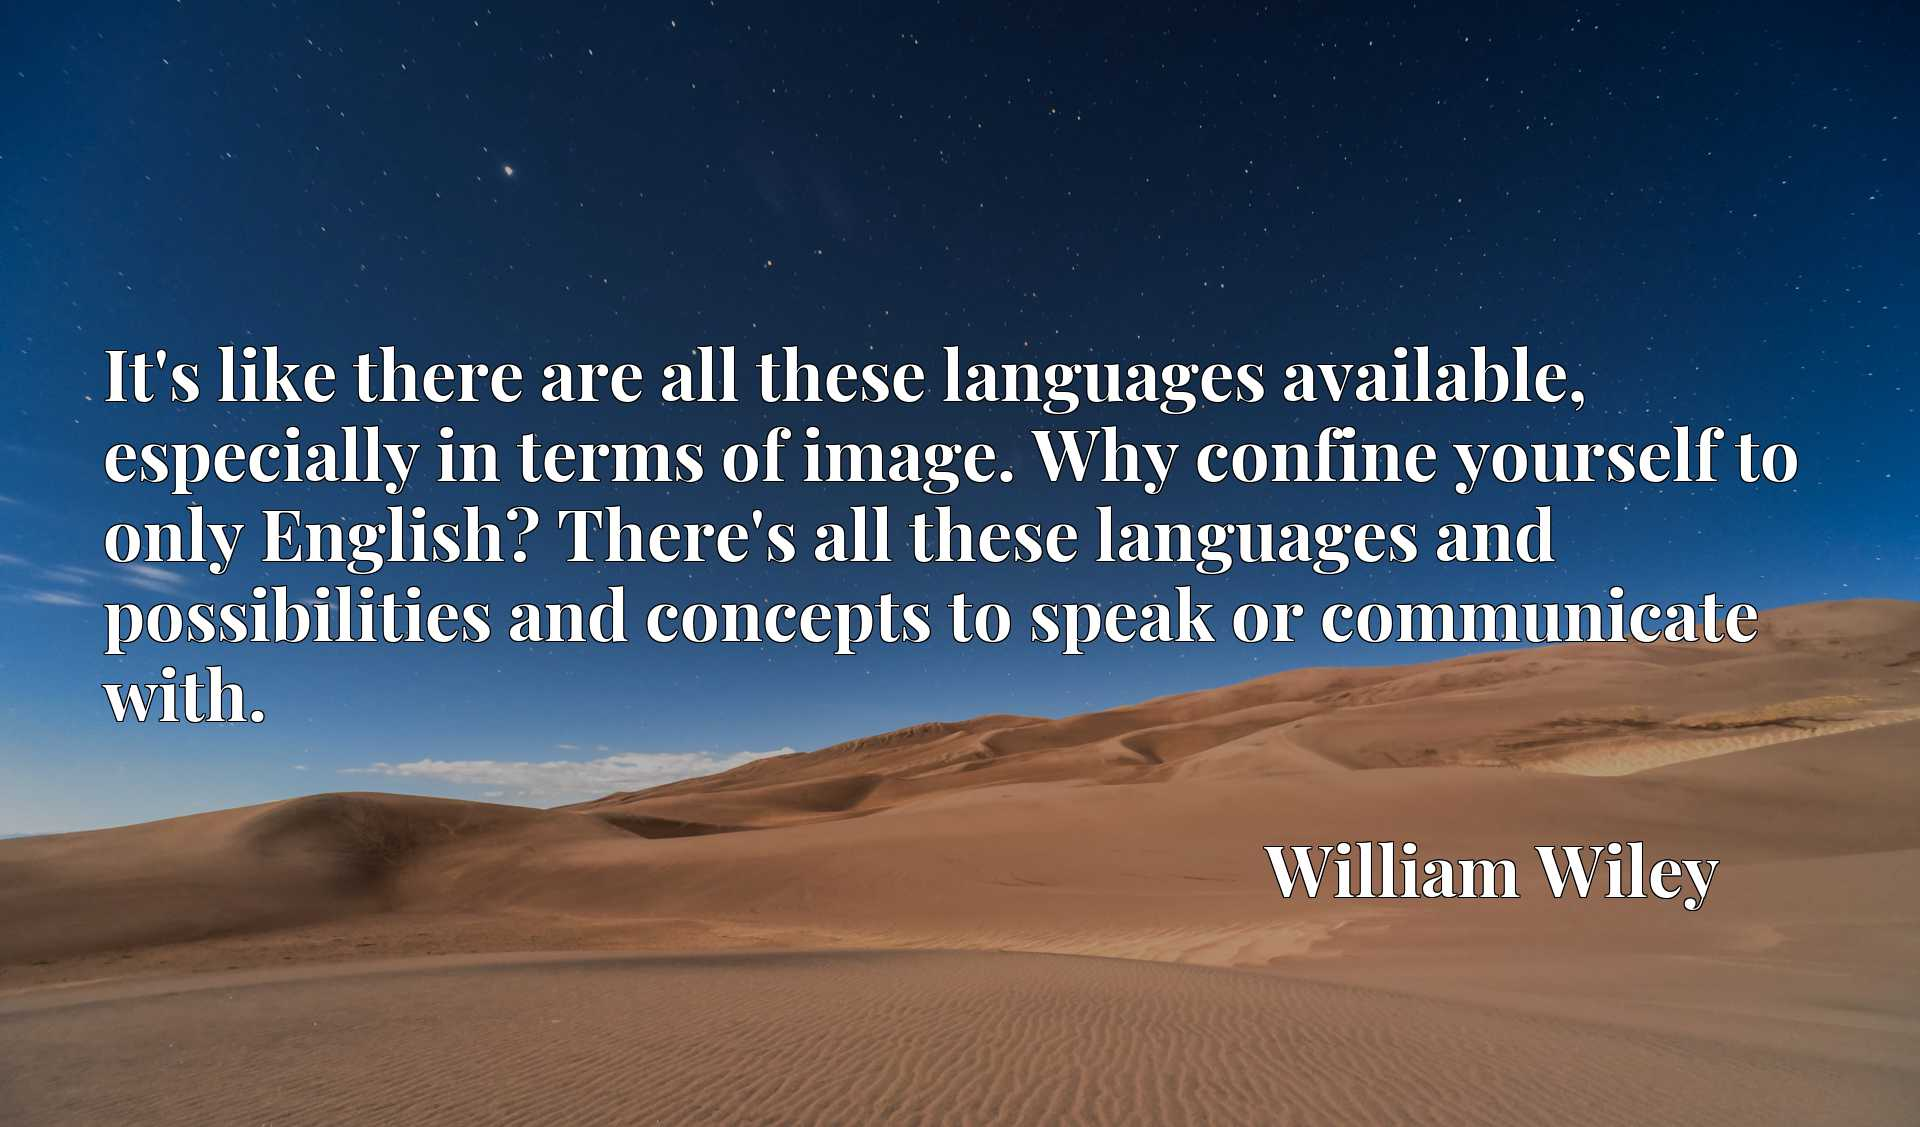 It's like there are all these languages available, especially in terms of image. Why confine yourself to only English? There's all these languages and possibilities and concepts to speak or communicate with.